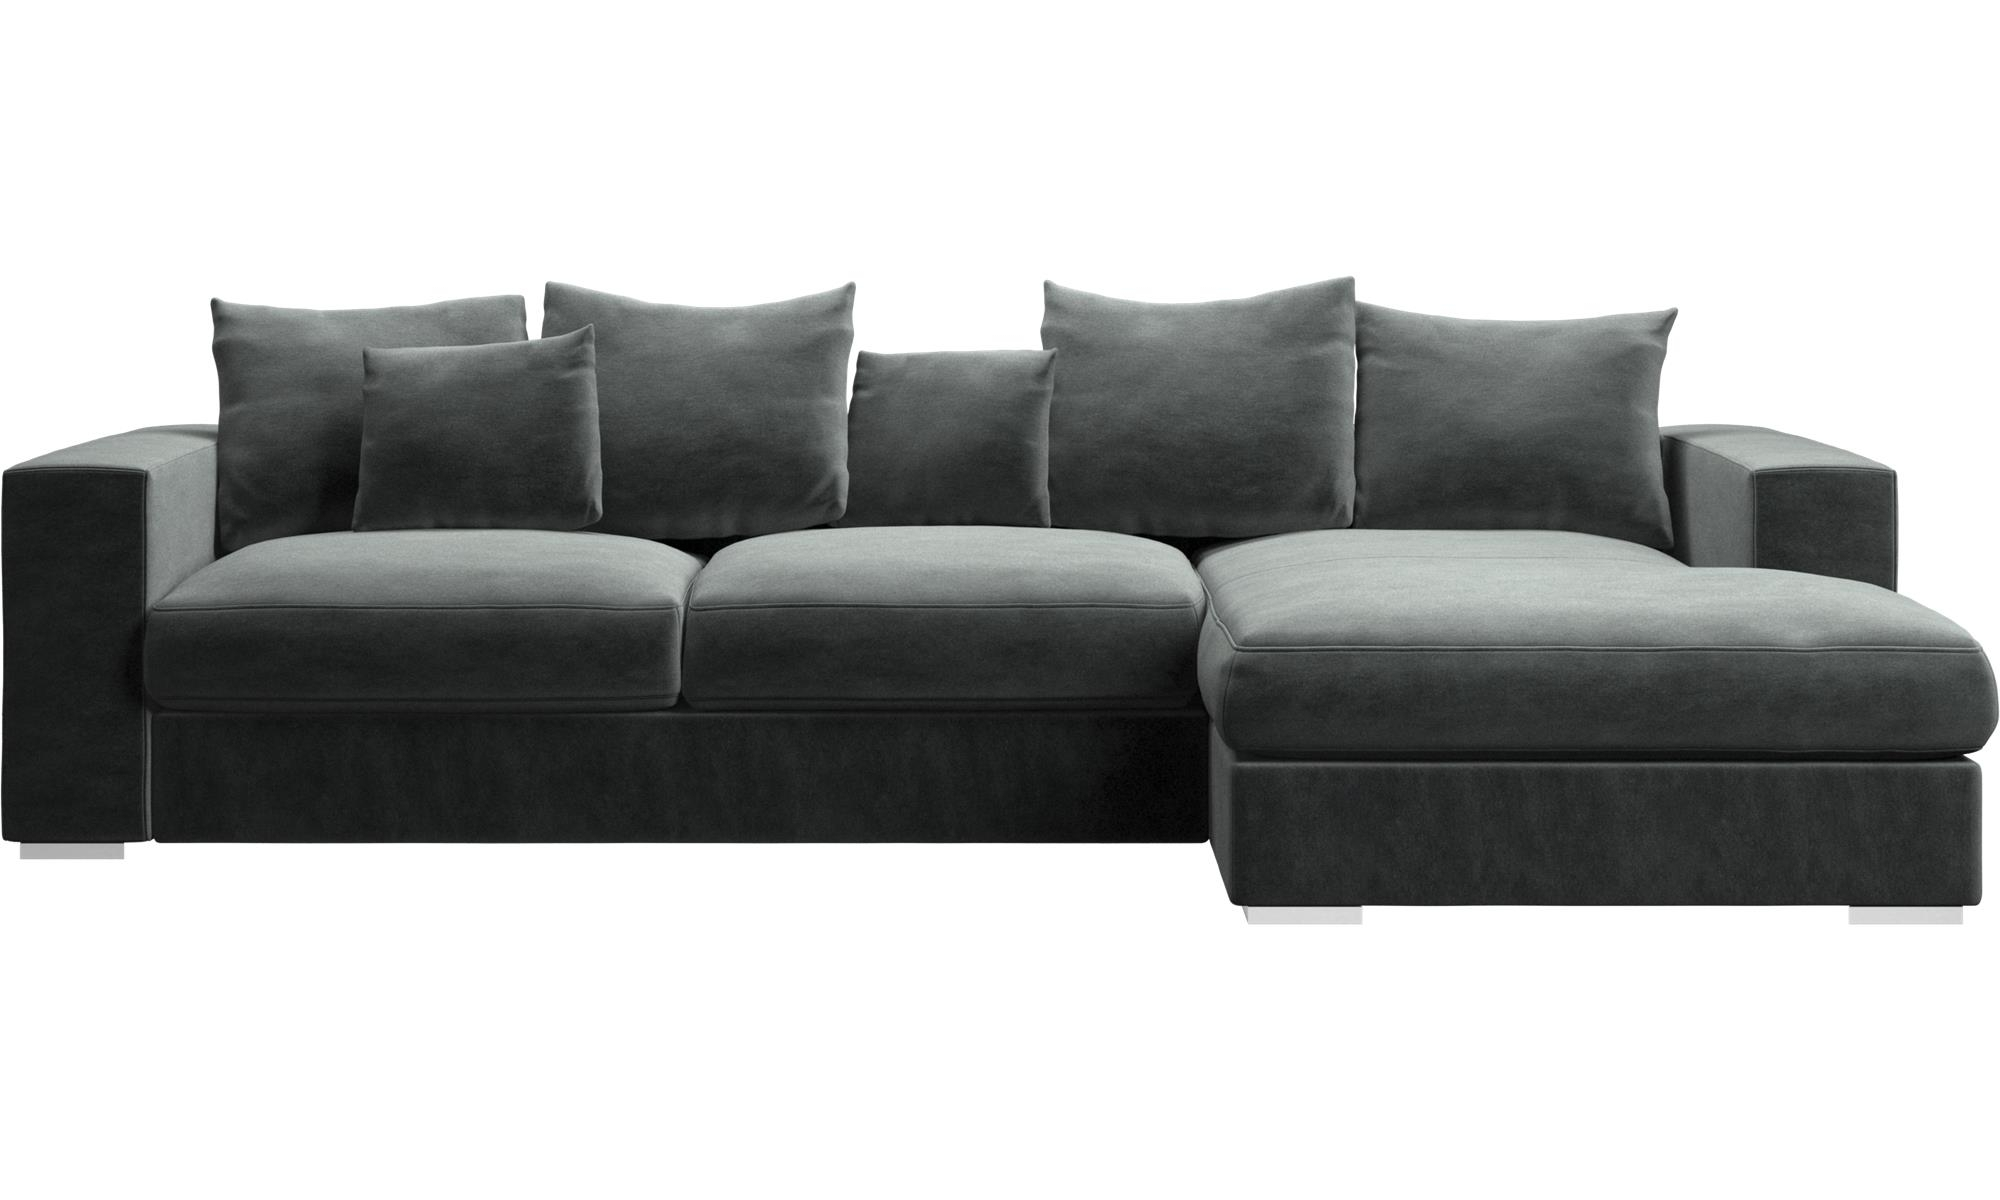 Most Recent Chaise Lounge Sofas – Cenova Sofa With Resting Unit – Boconcept With Sofas With Chaise Lounge (View 10 of 15)